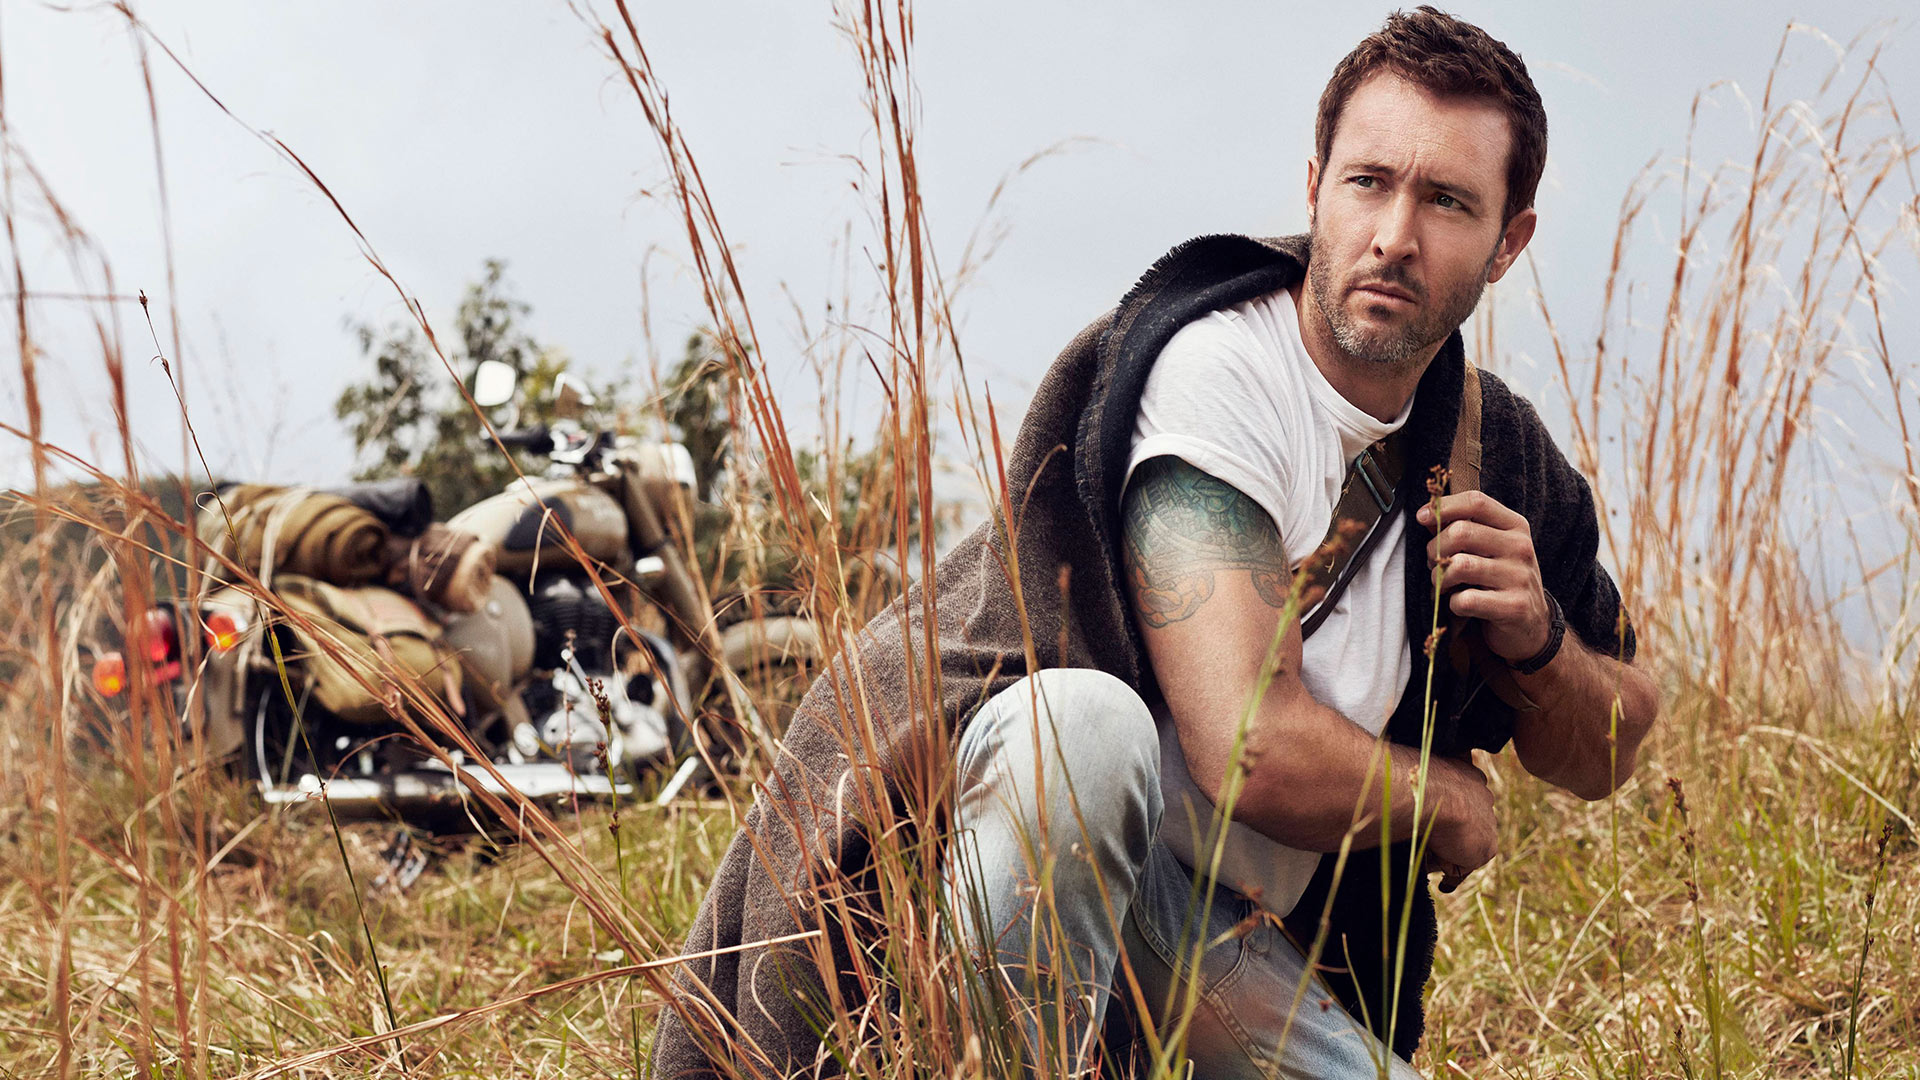 Another day in paradise with Alex O'Loughlin